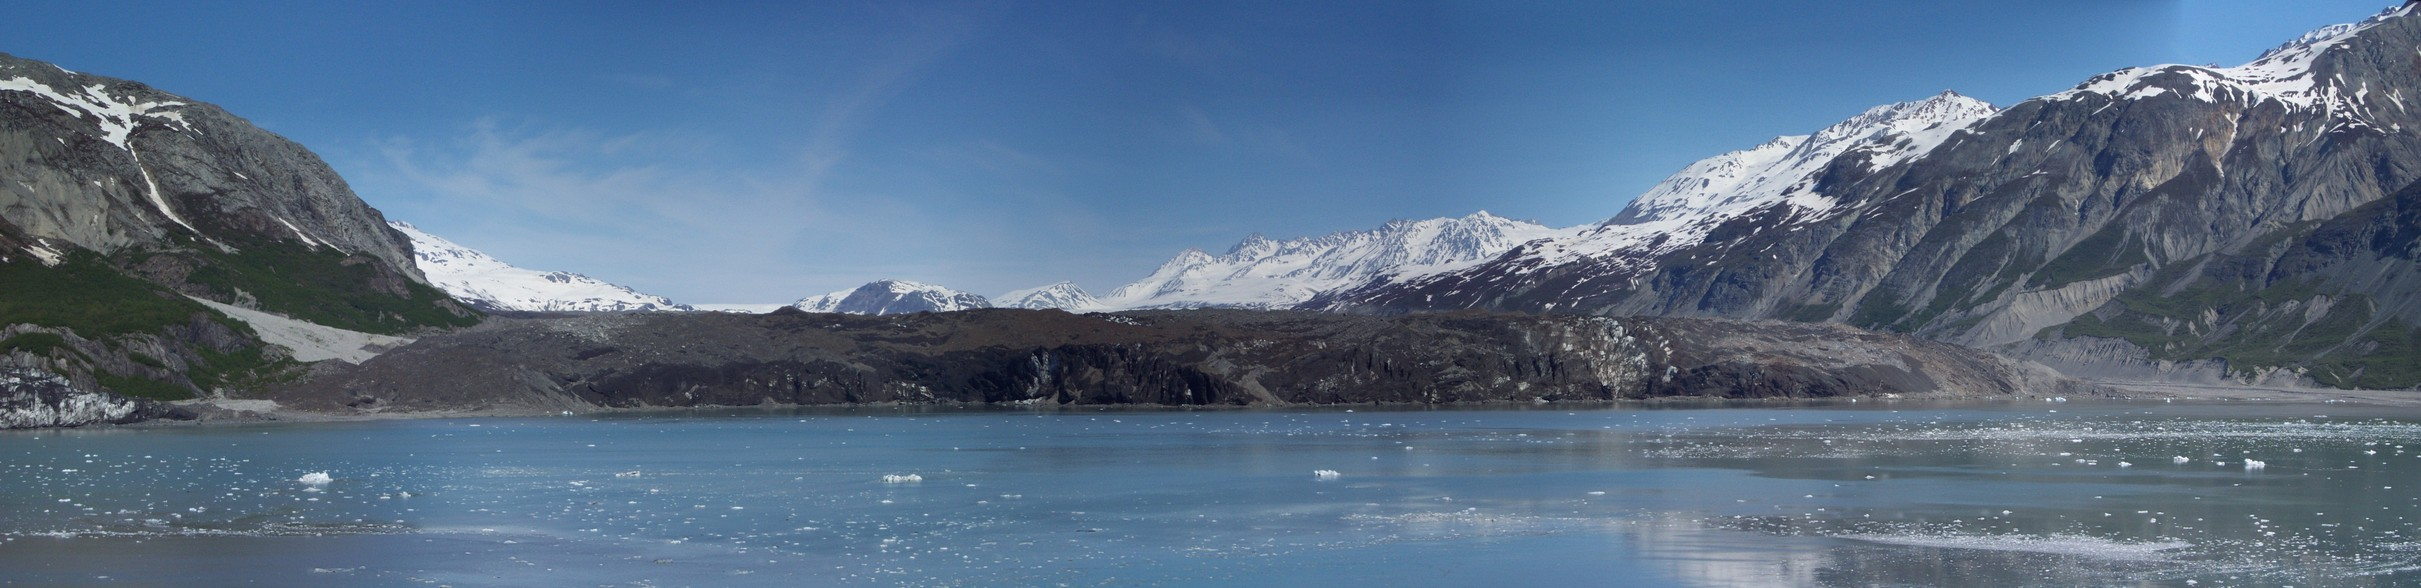 pano17_grand_pacific_glacier_panoramic_180.jpg